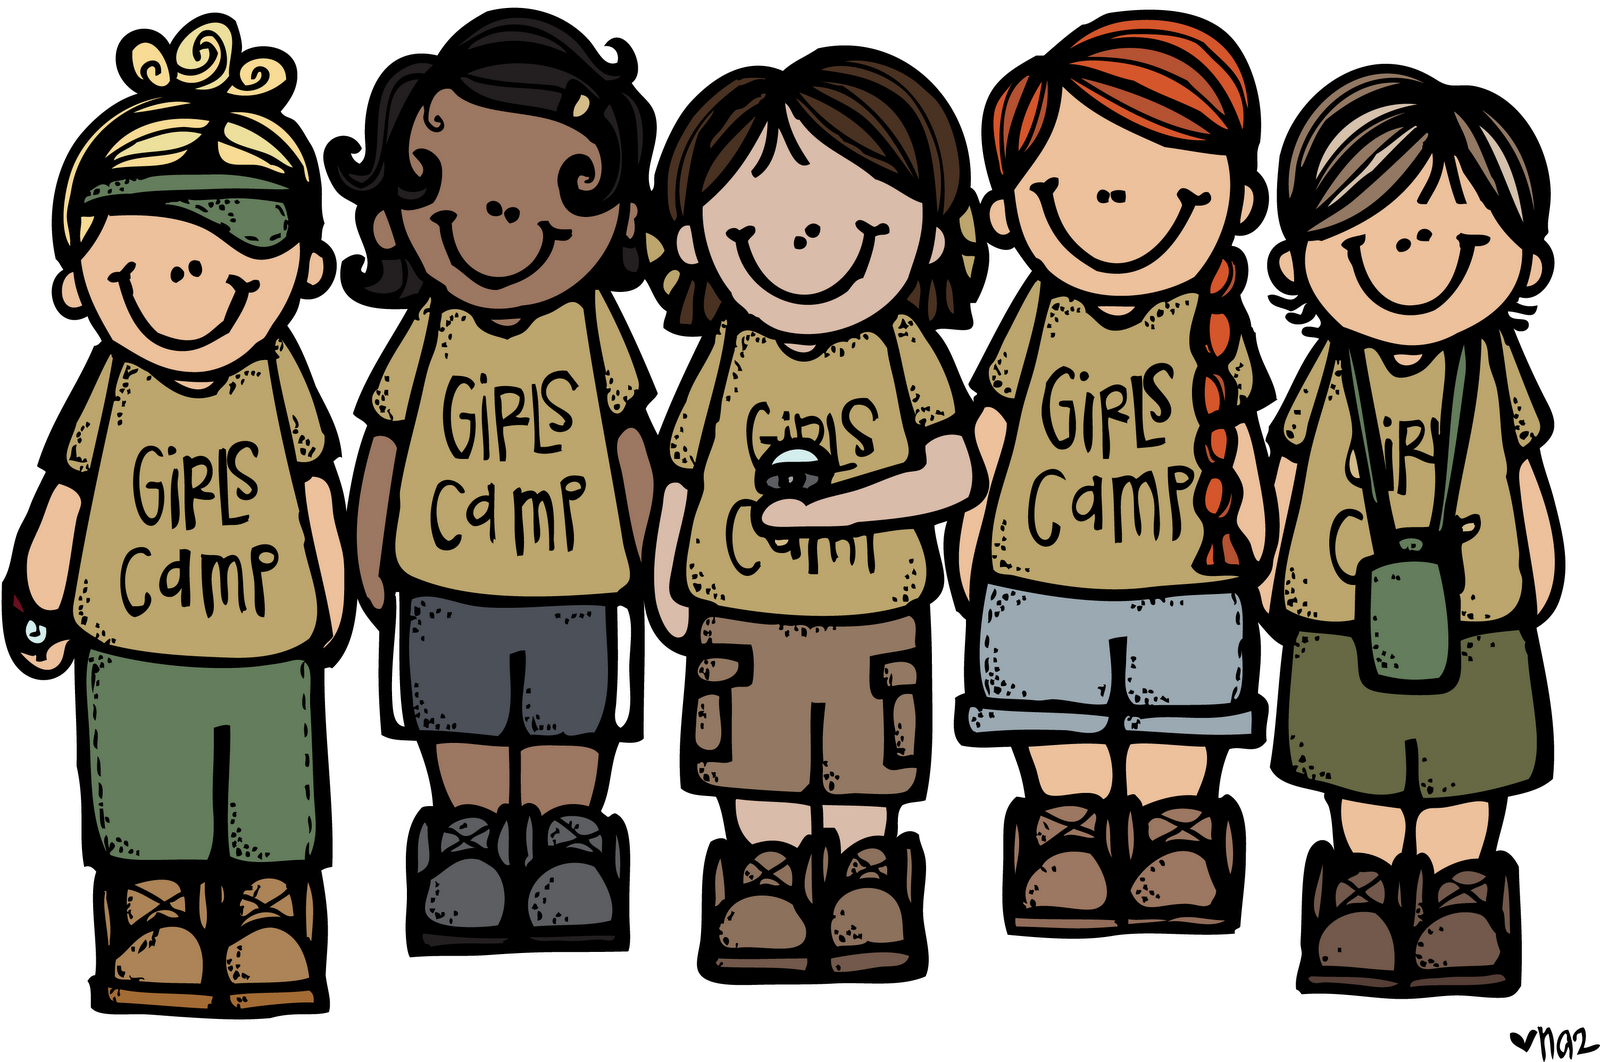 Camp clipart camp director. Girls free